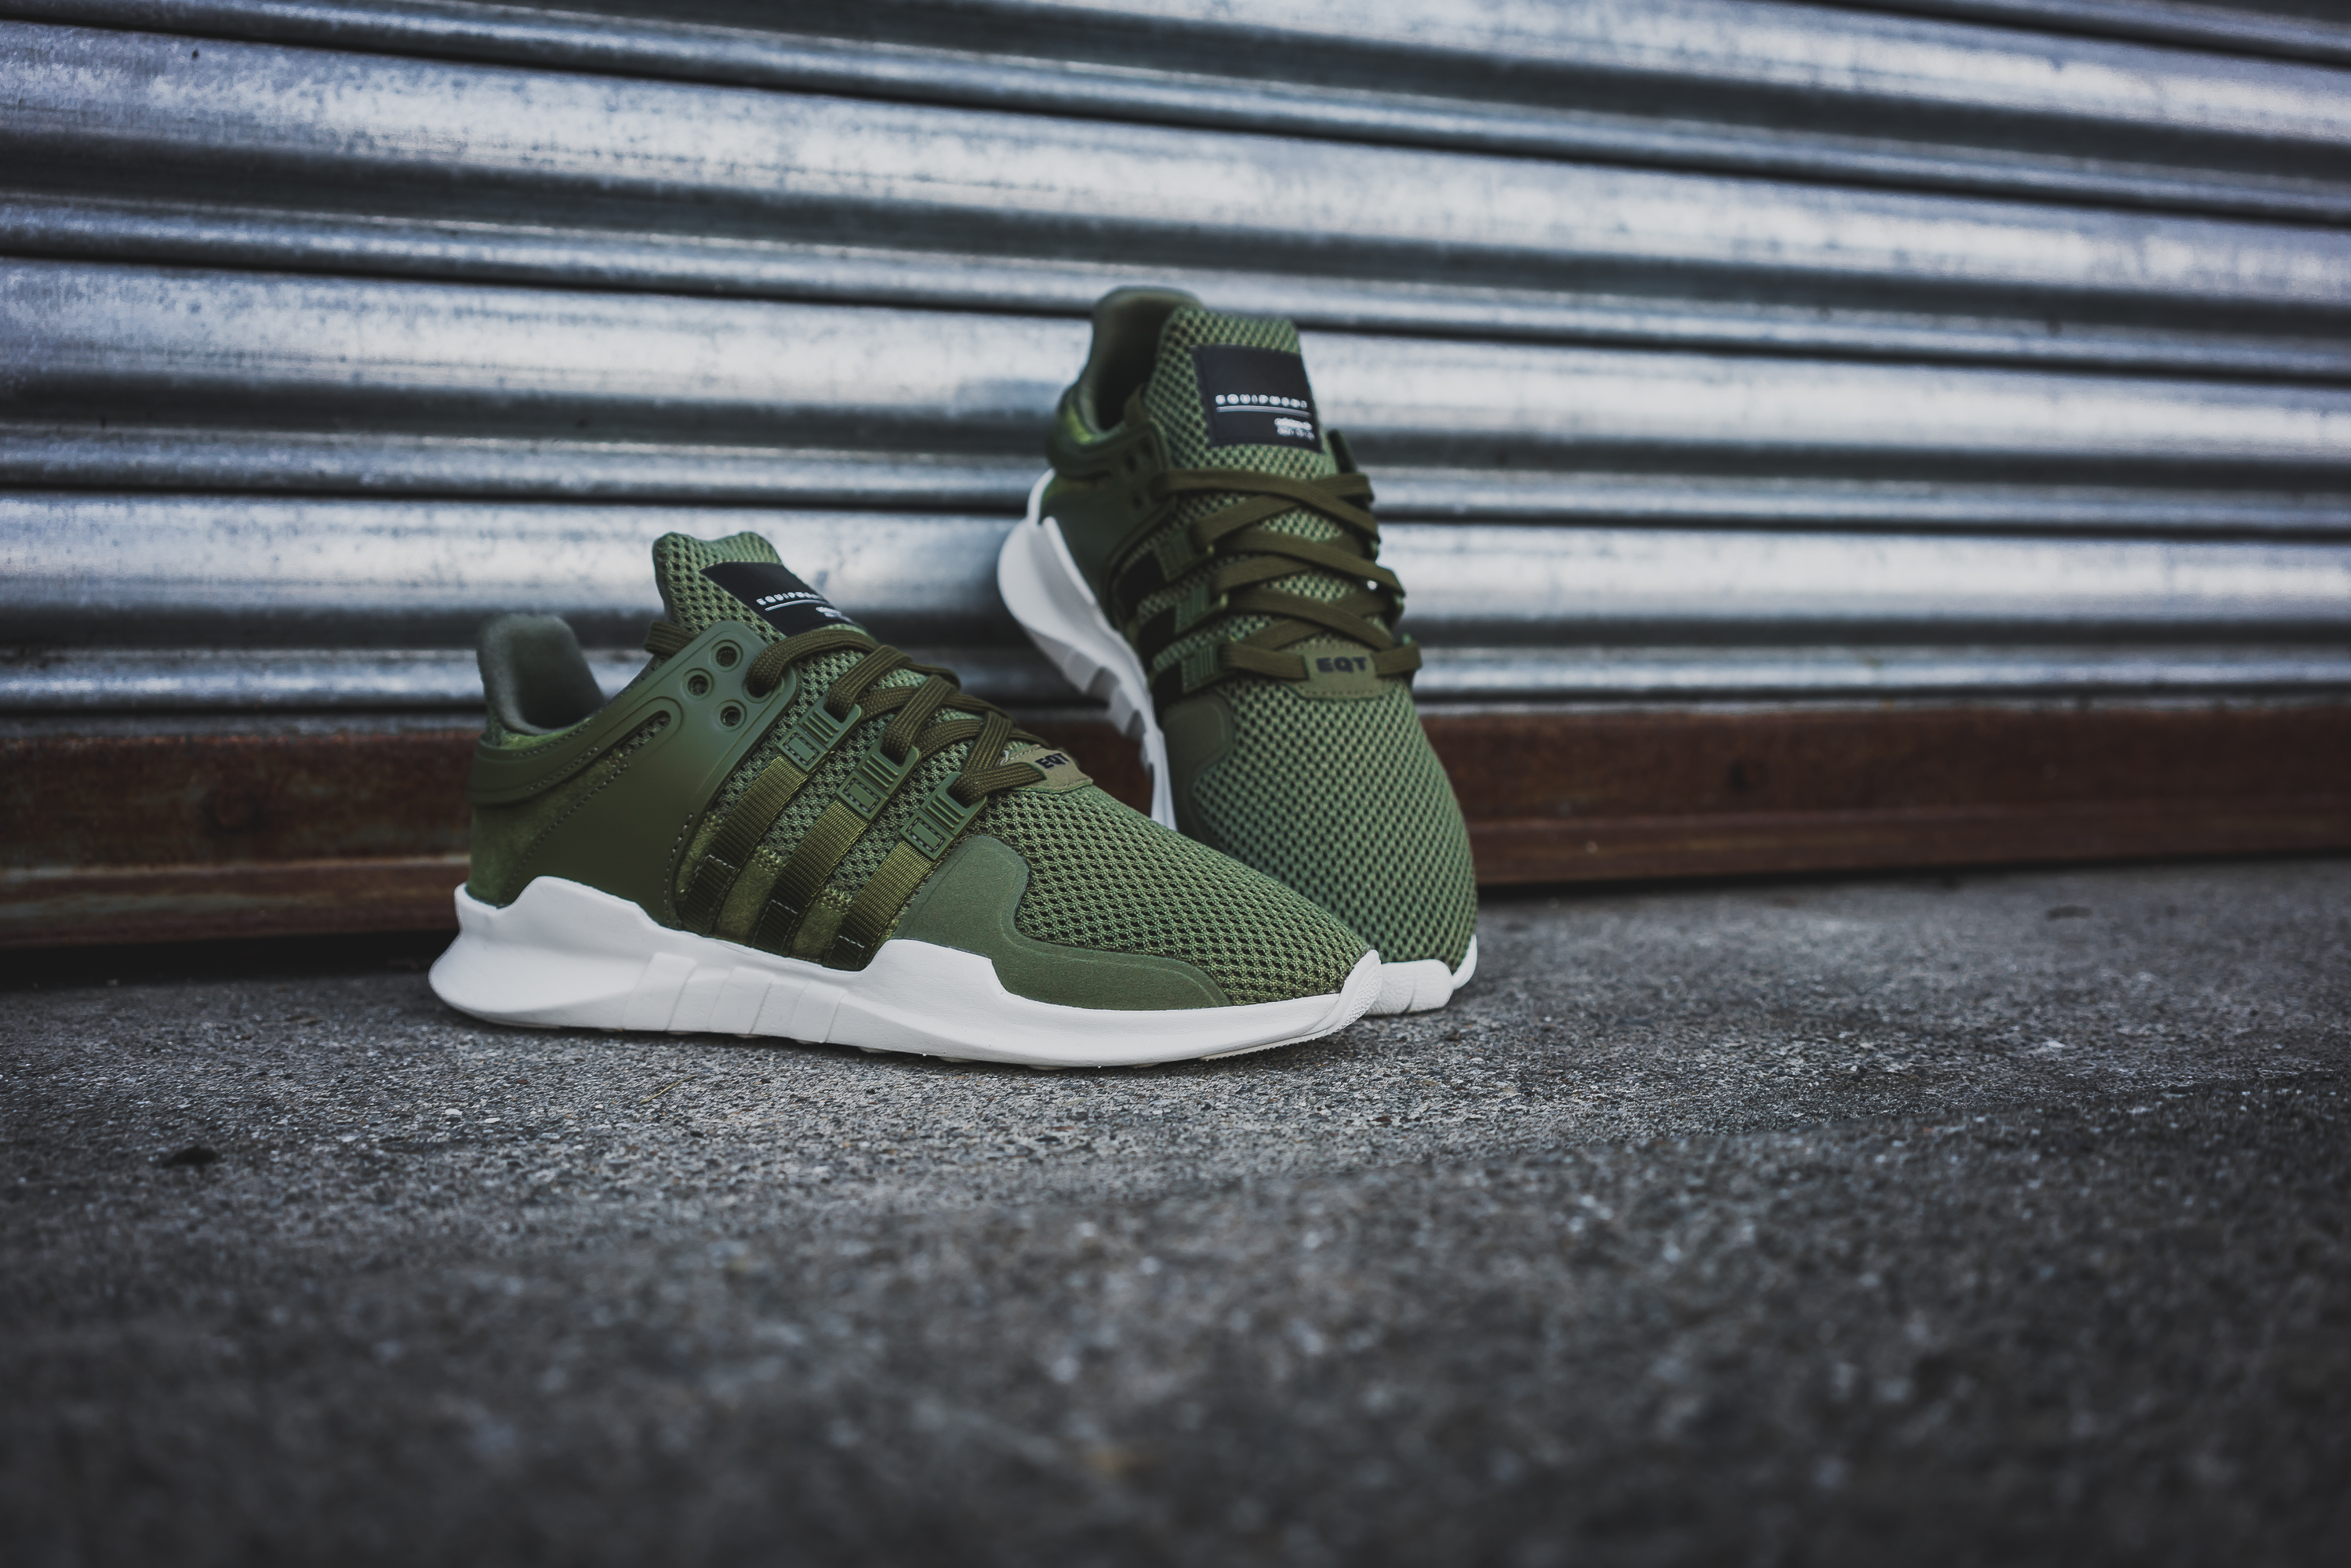 6245c55390836 ... support adv olive cargo urban 94377 215ab; inexpensive adidas originals  updates the classic eqt silhouette with a modern twist. the shoe features